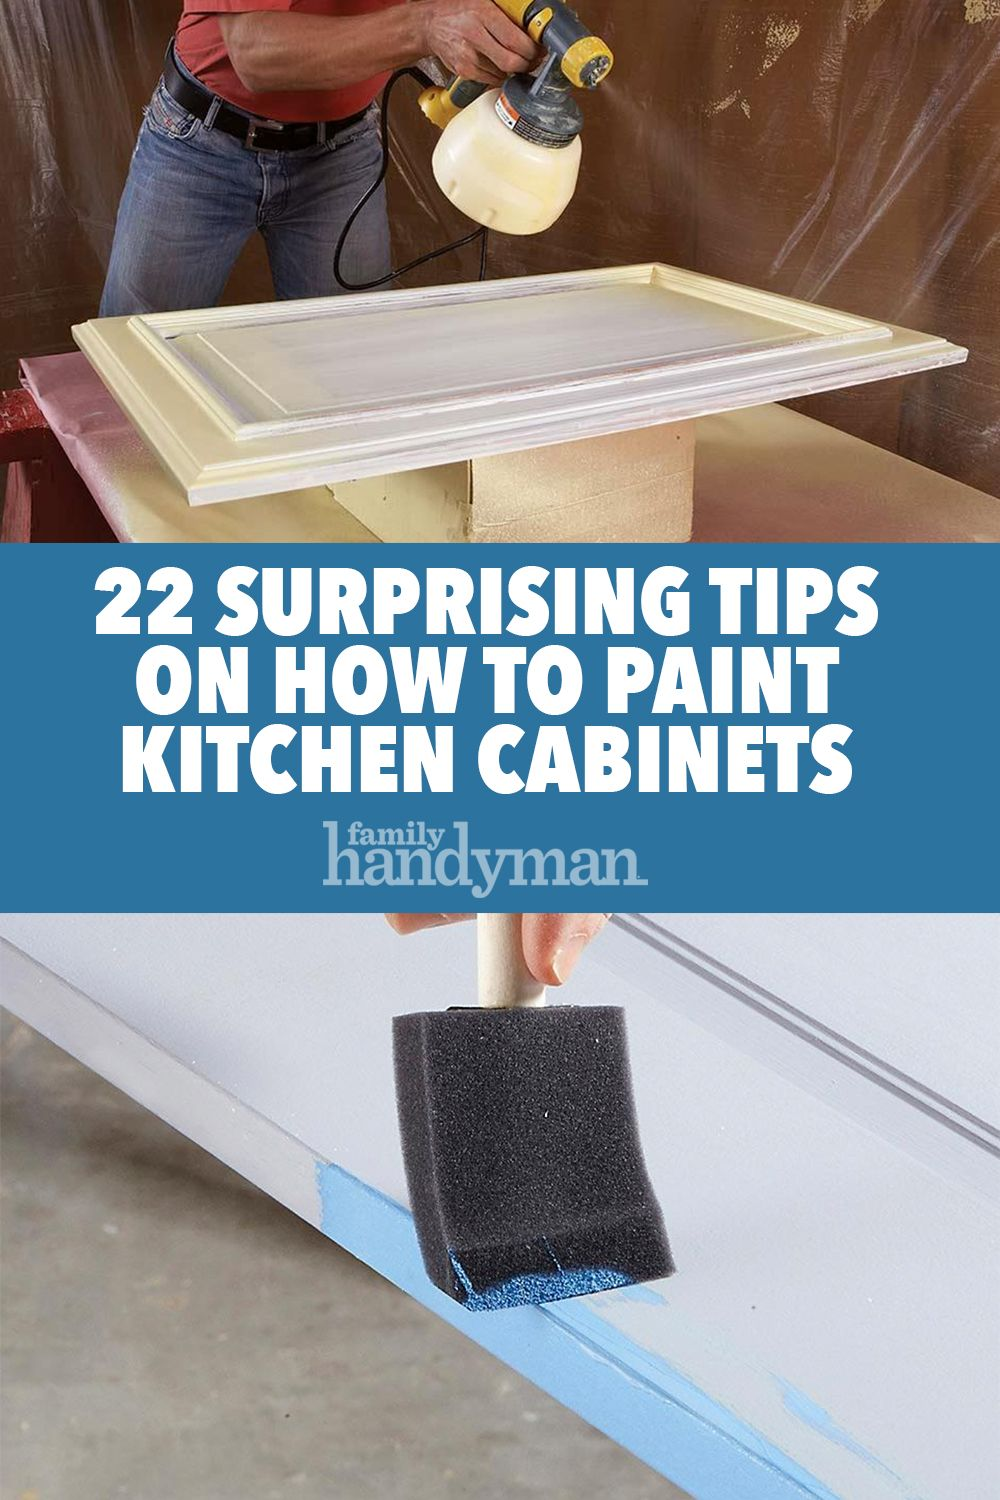 22 Surprising Tips on How to Paint Kitchen Cabinets -   23 diy projects Storage kitchen cabinets ideas